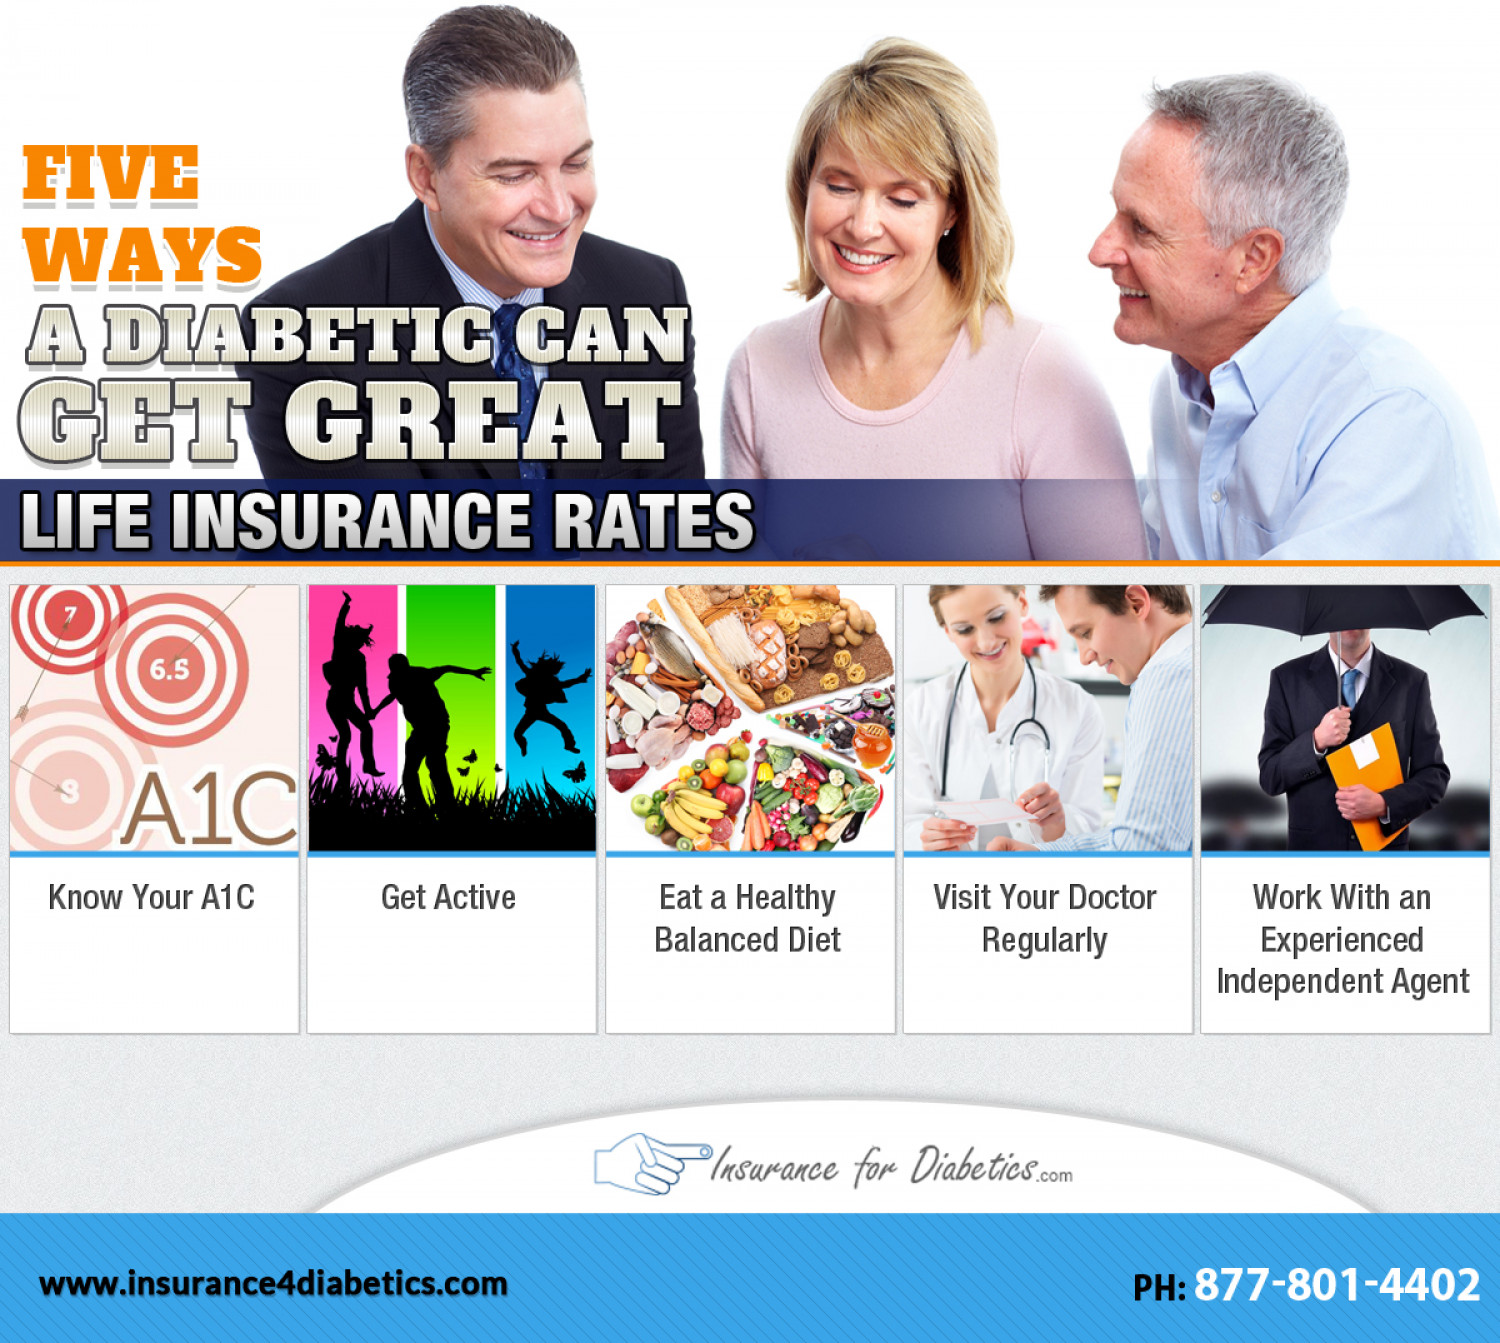 Five Ways to Lower Life Insurance Rates for Diabetics Infographic